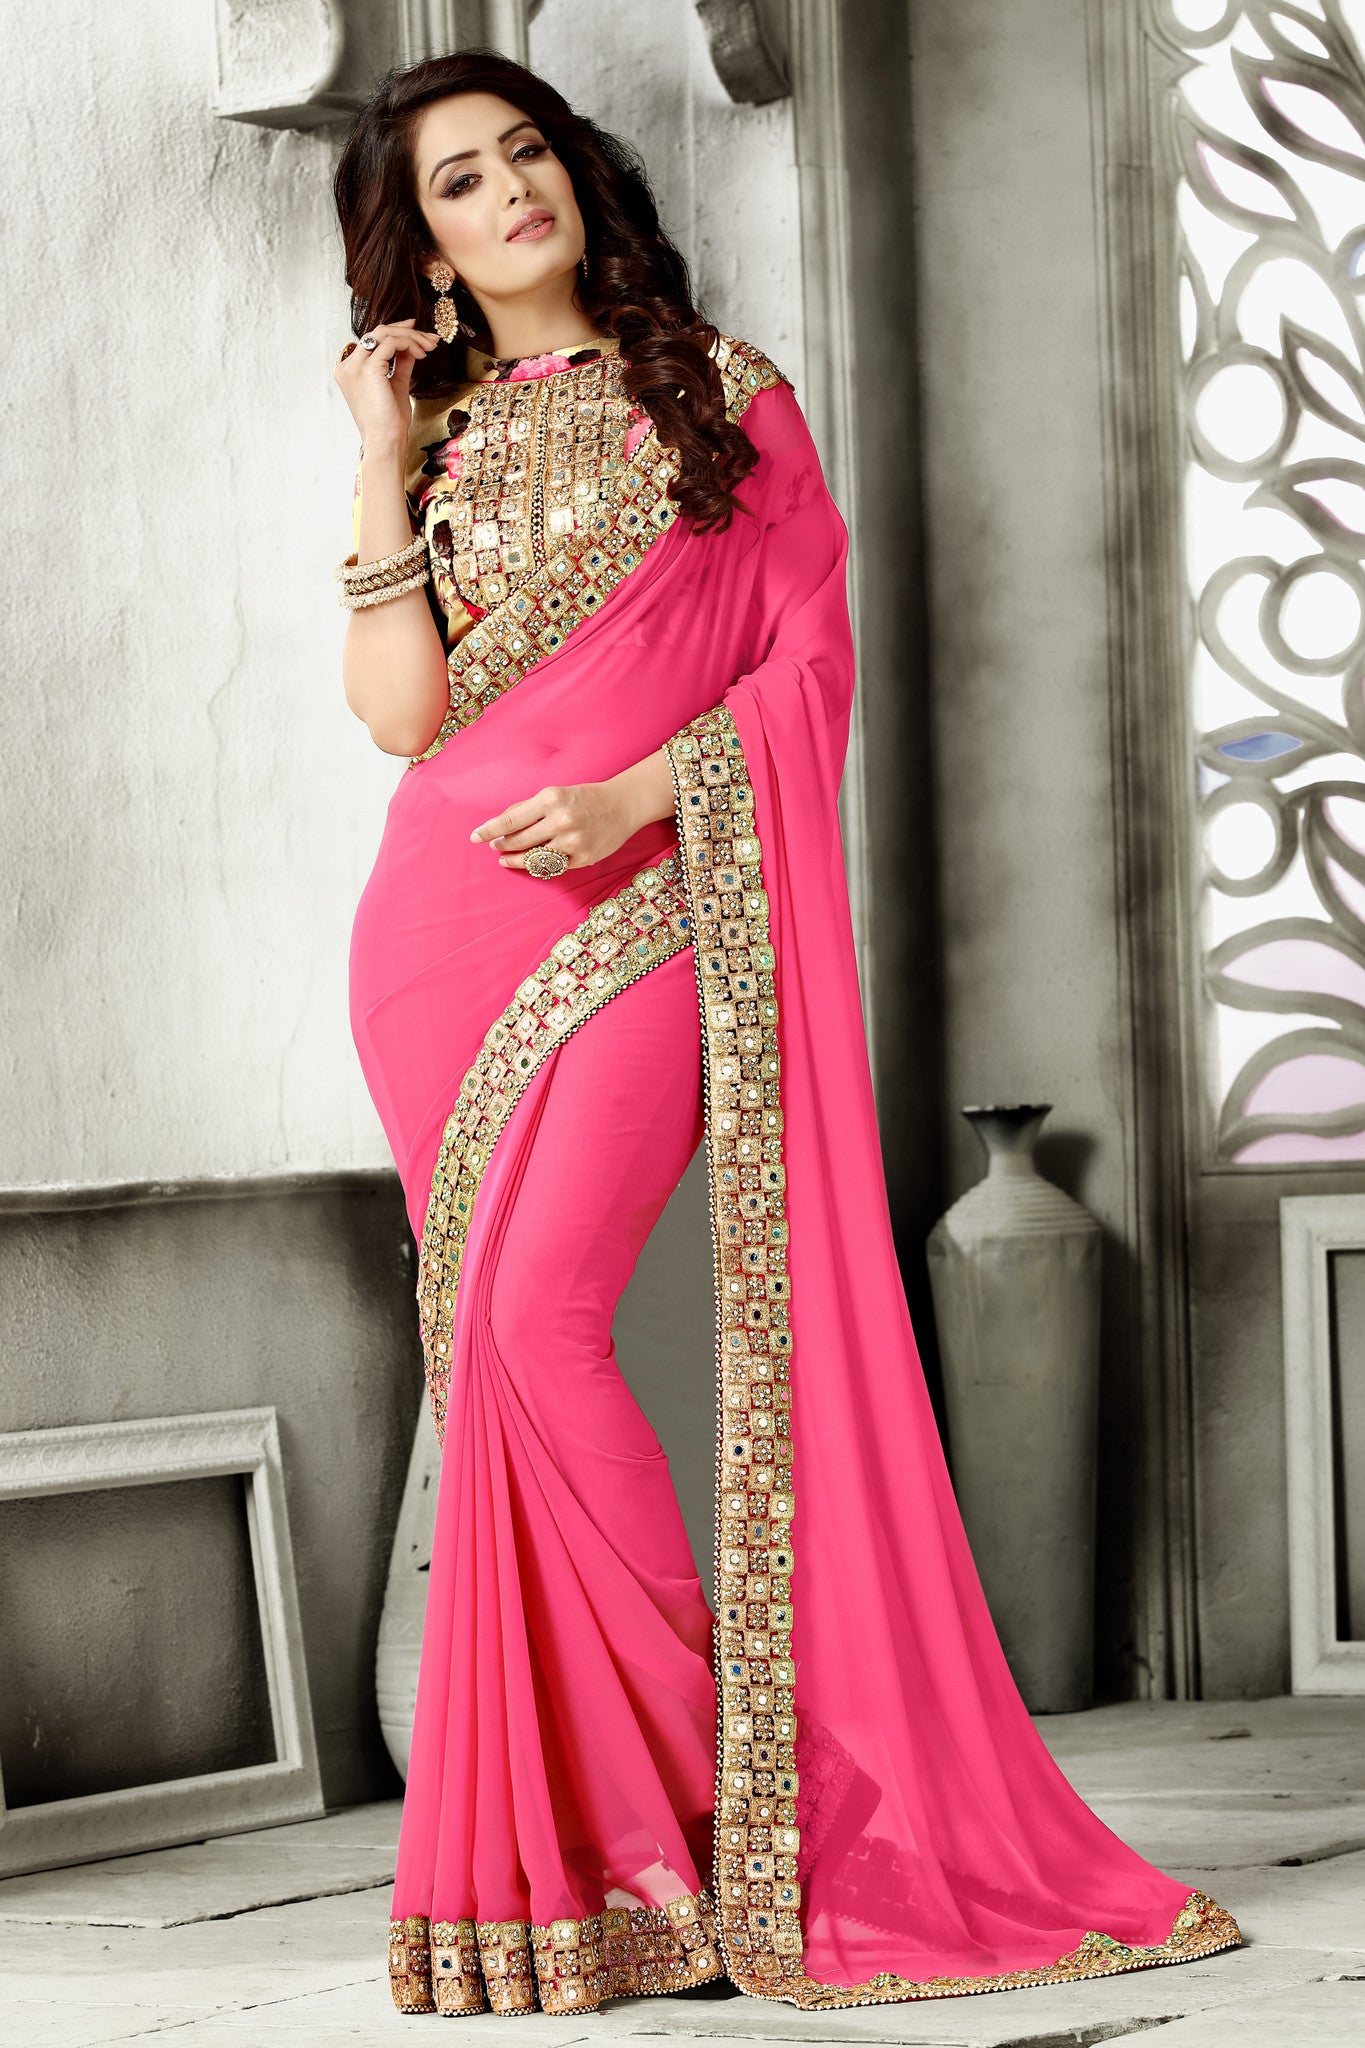 Georgette and Bhagalpuri Multi Colored Saree Collection.